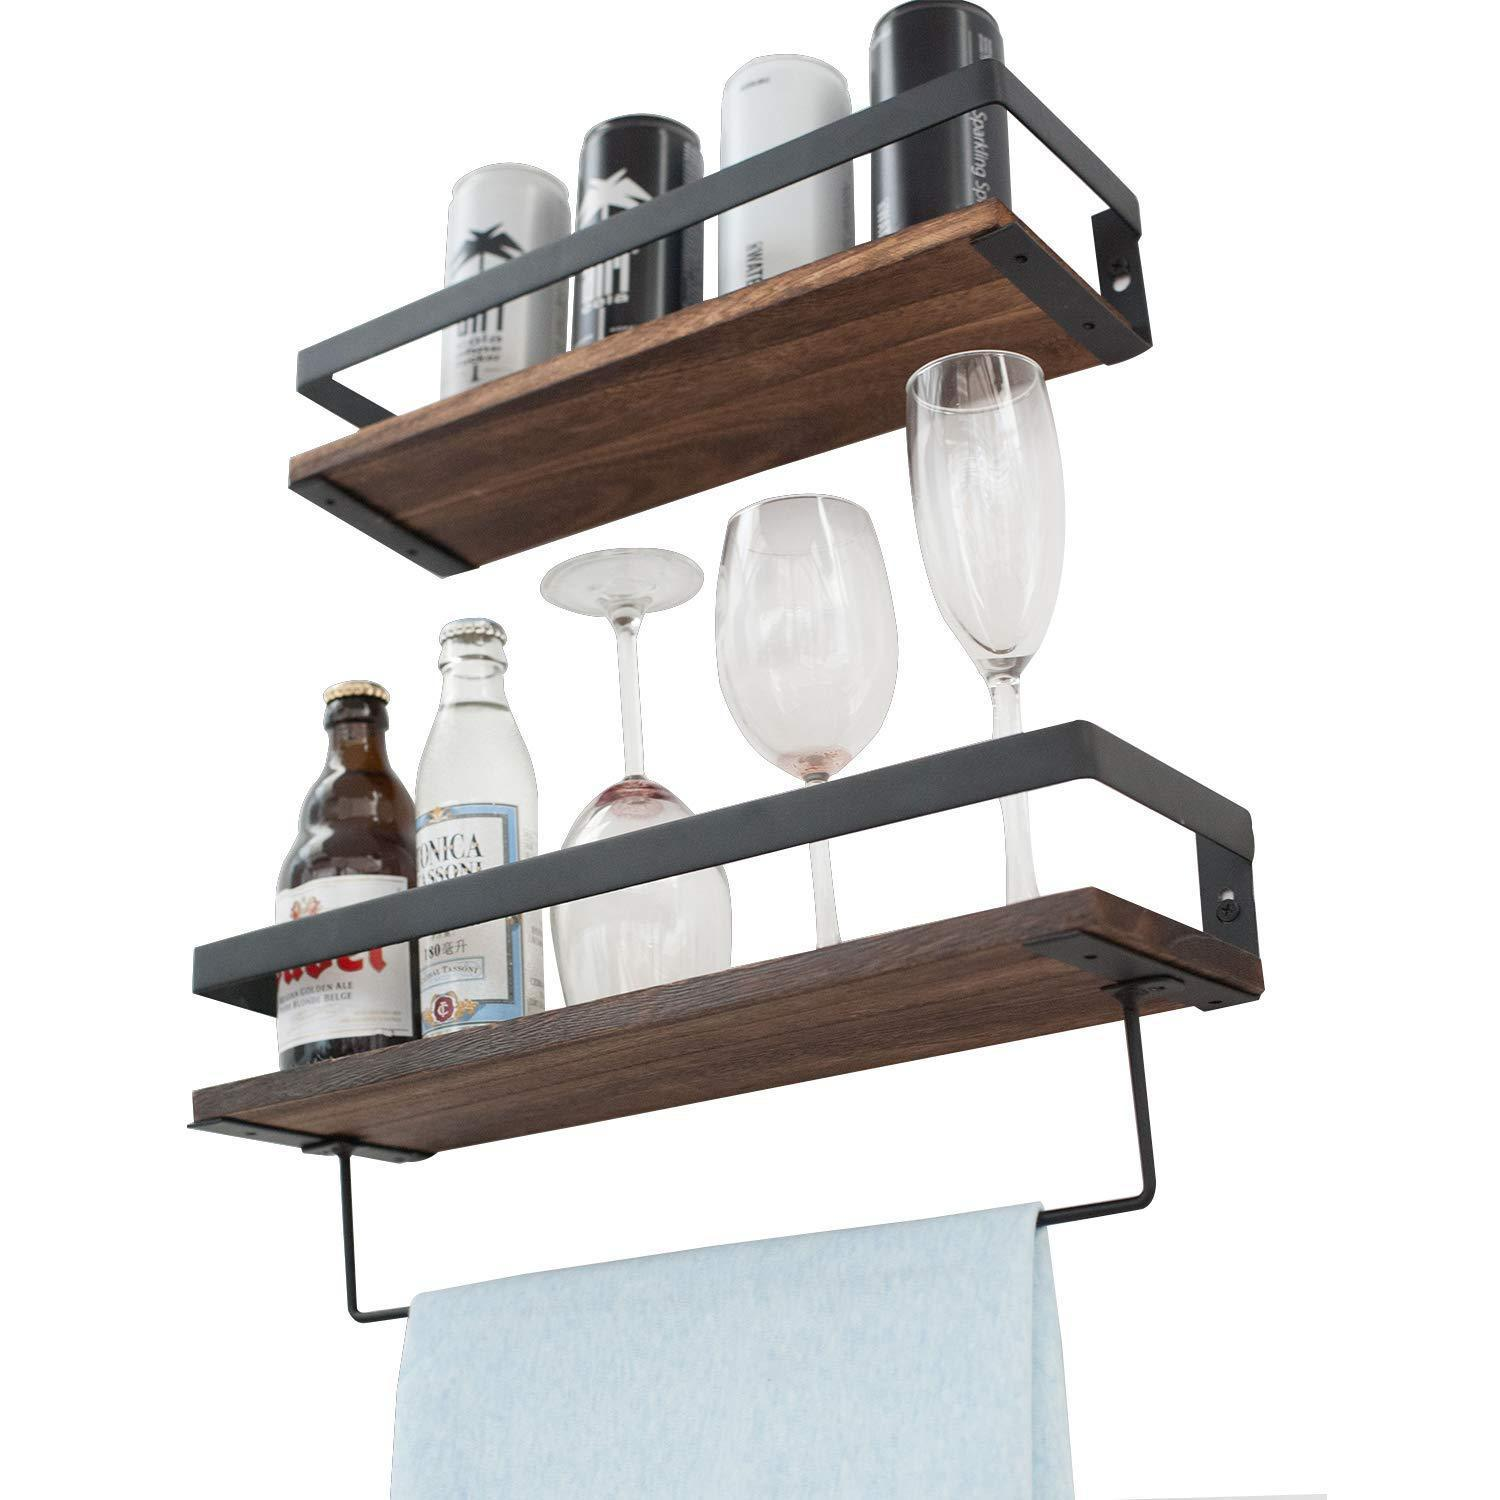 Try y me bathroom storage shelf wall mounted set of 2 rustic wood floating shelves with removable towel bar perfect for kitchen bathroom carbonized brown